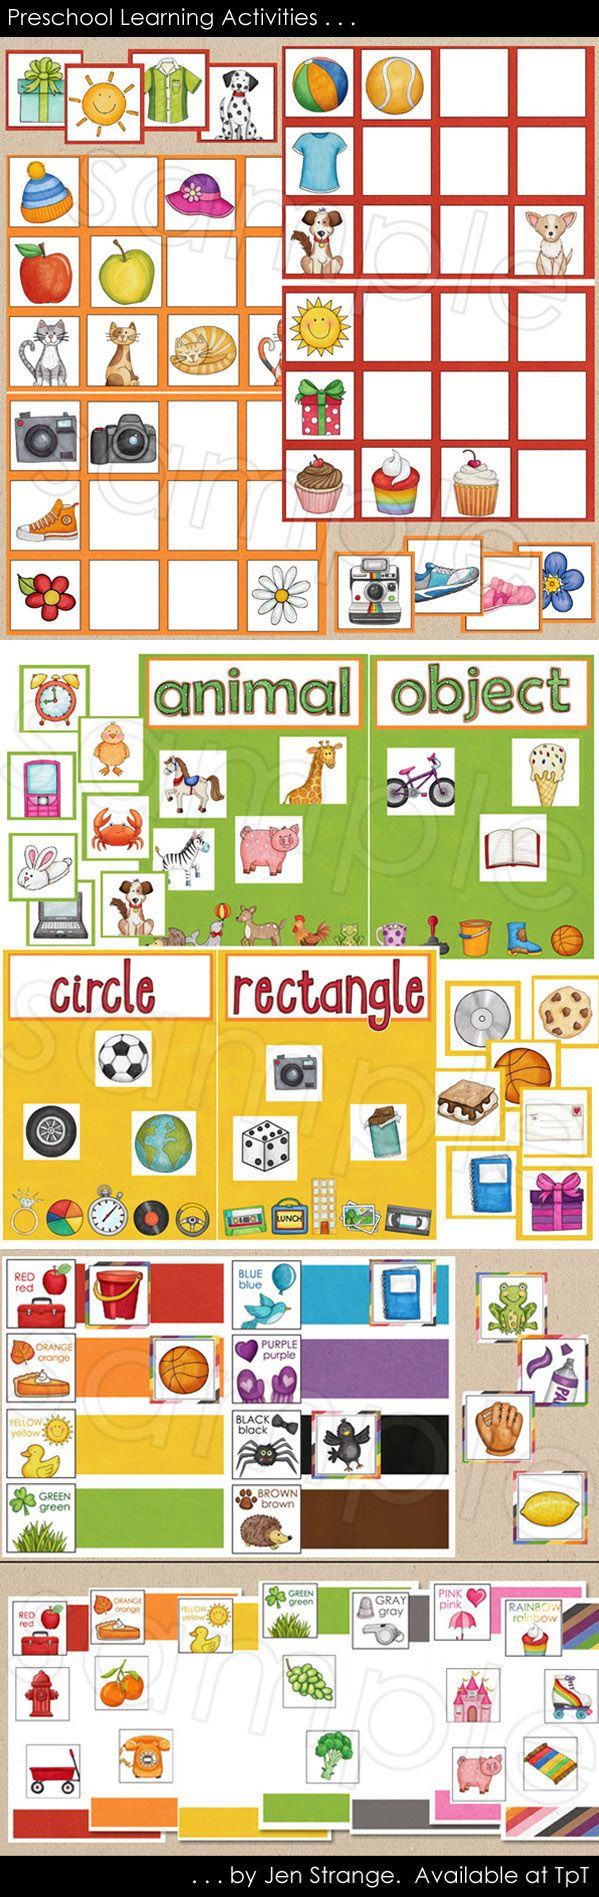 Don't give your preschooler a workbook to learn shapes, colors, or matching concepts - use colorful cards and let her move around!  Sit down with these 5 sorting activities and make learning an interactive, conversational experience.  File folder game format.